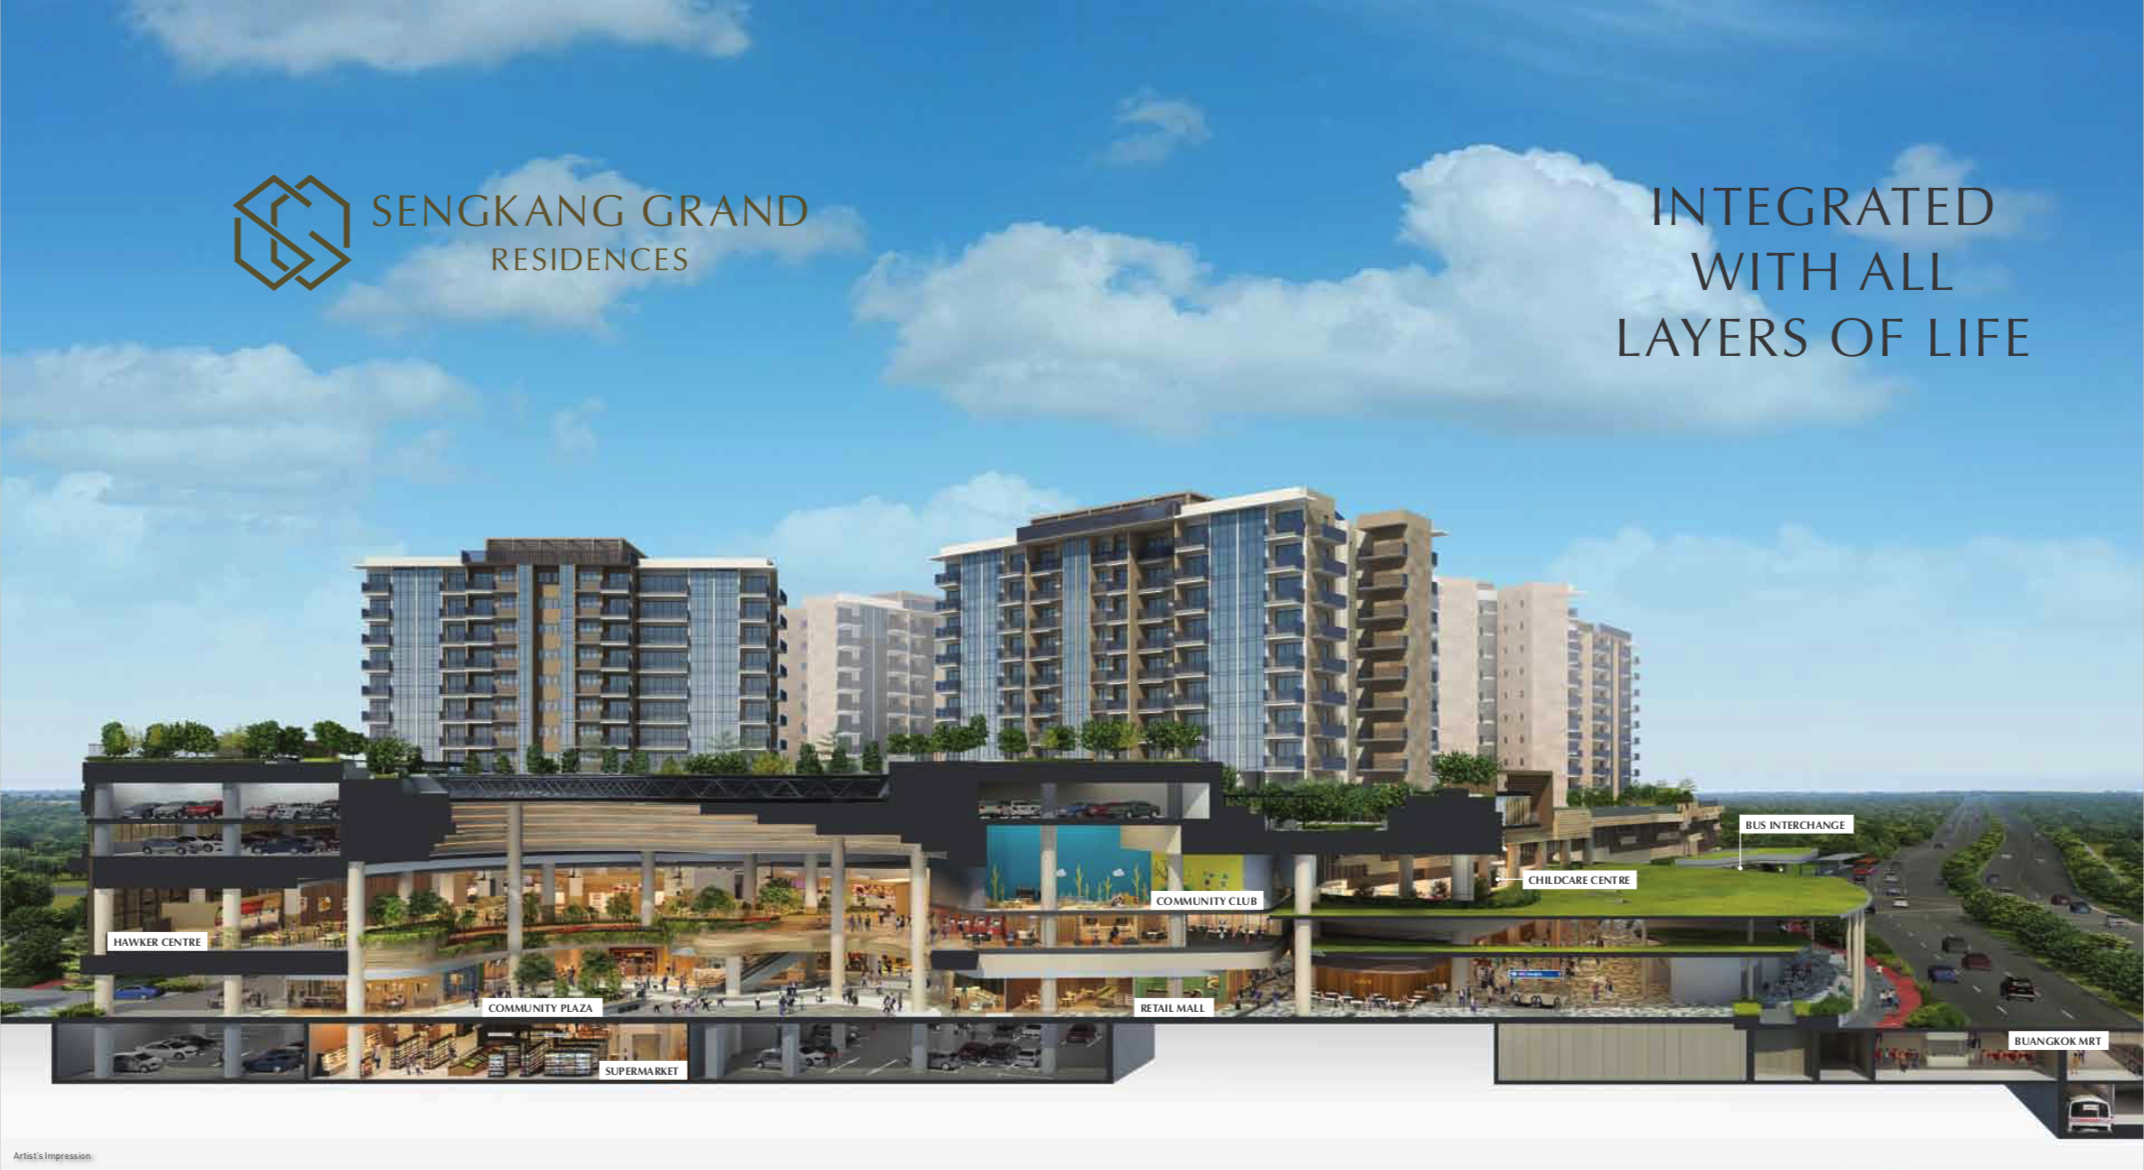 Sengkang Grand Residences Integrated Development Cross Section of Mall